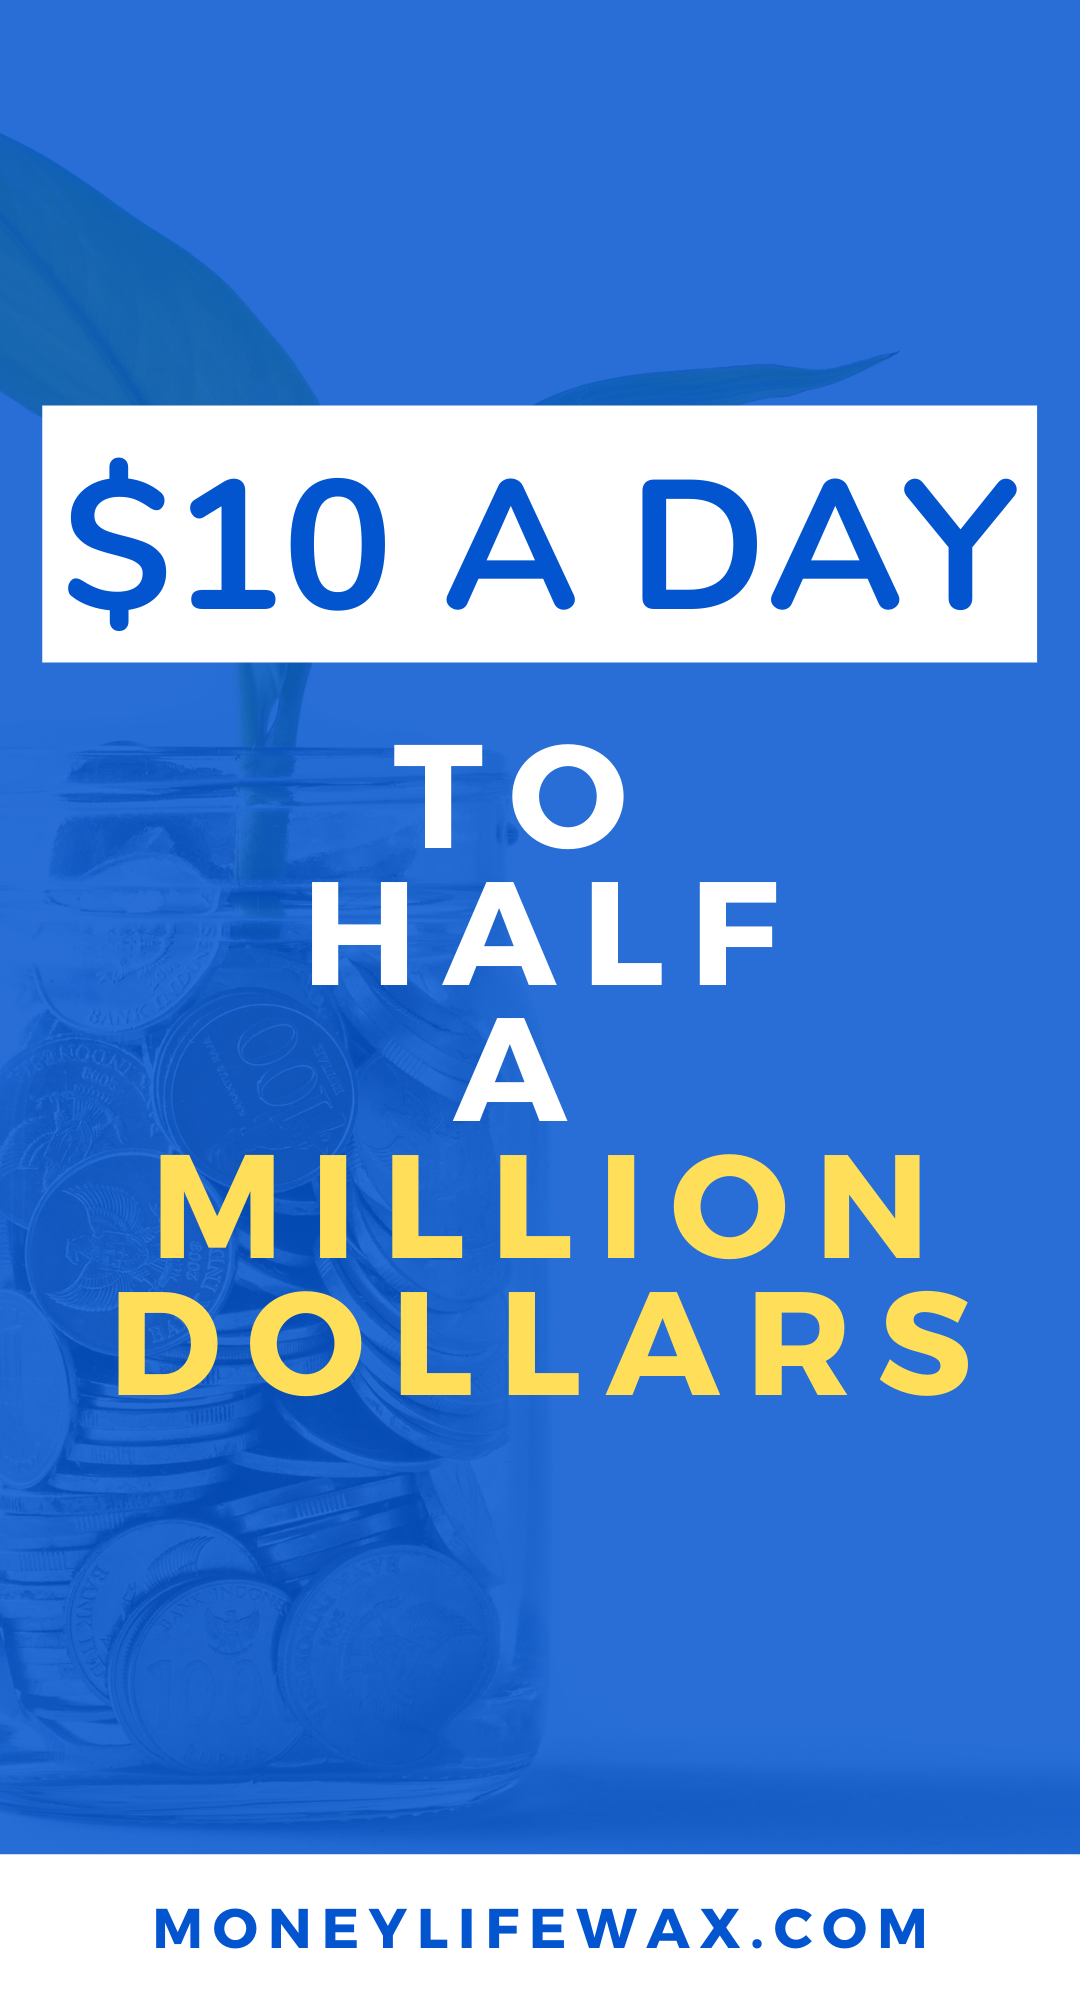 10 Per Day To Half A Million Money Life Wax In 2020 Investing Strategy Finance Saving Millennial Personal Finance